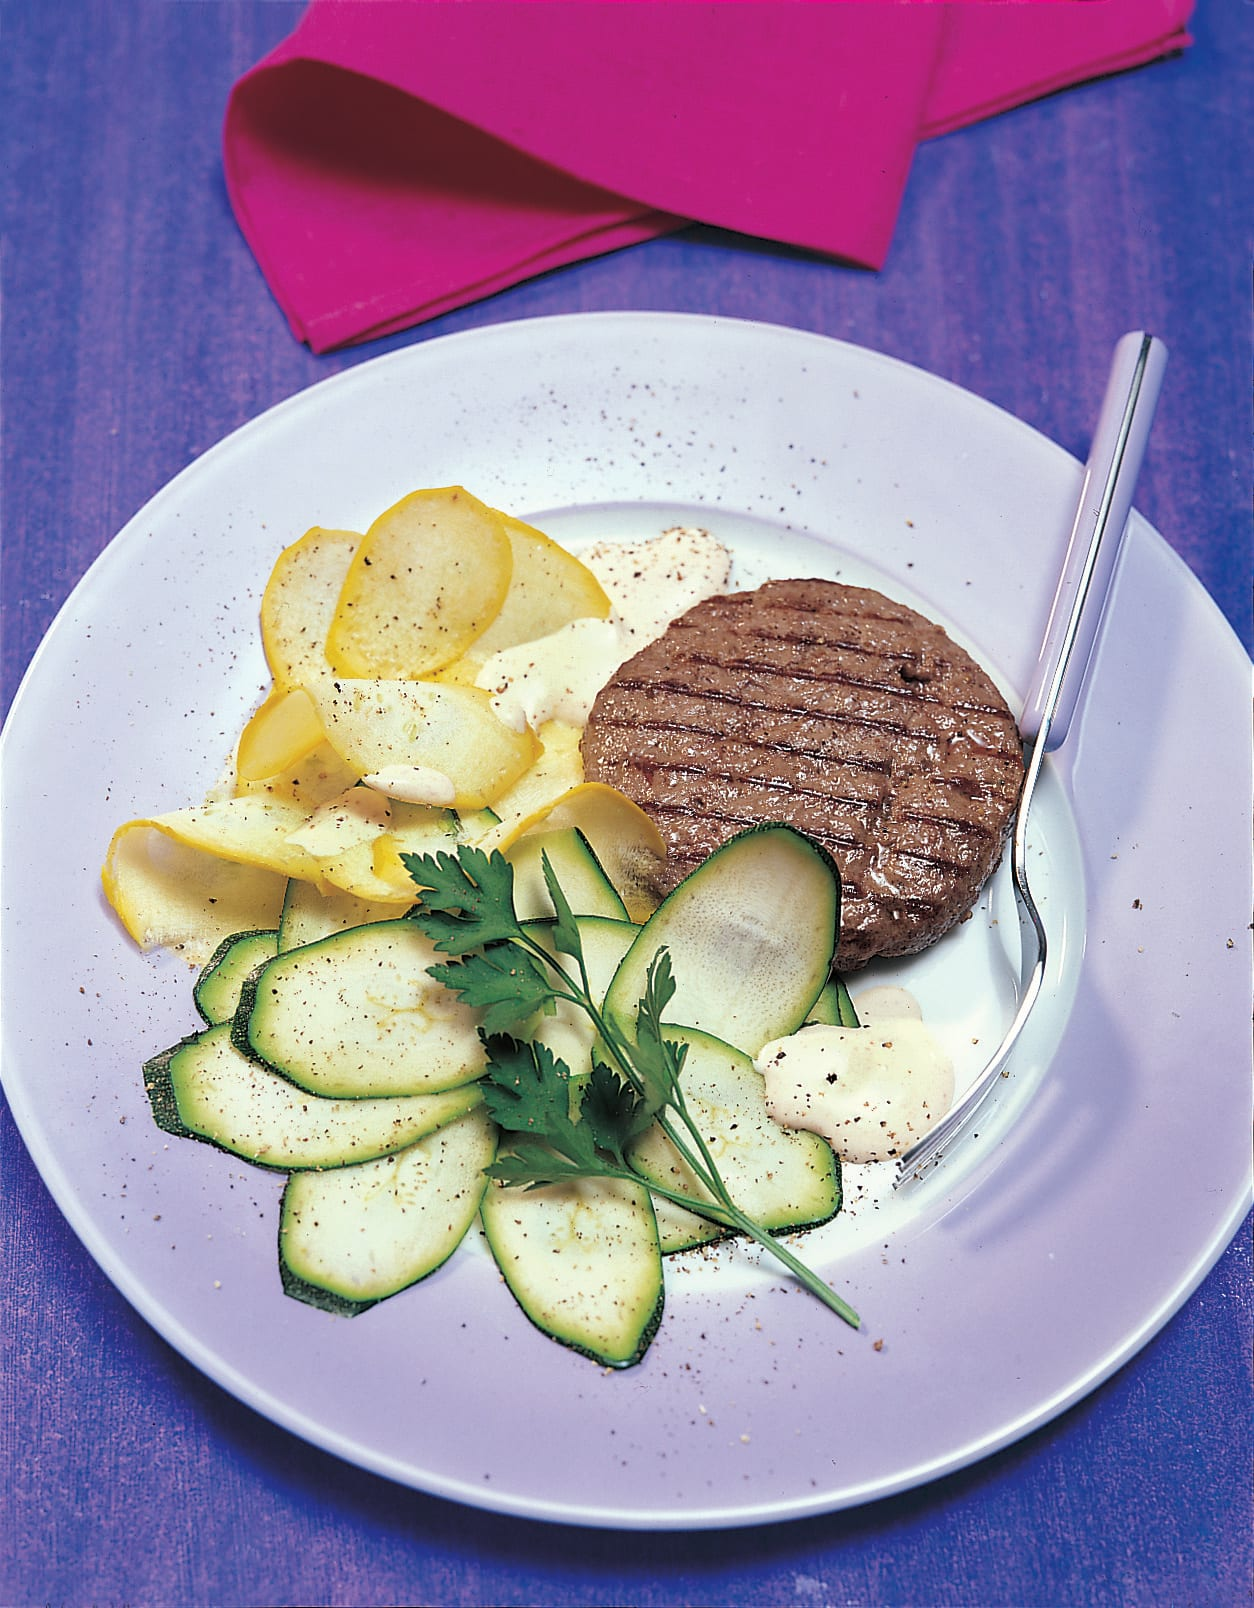 Steak haché et sa salade de courgettes au curry